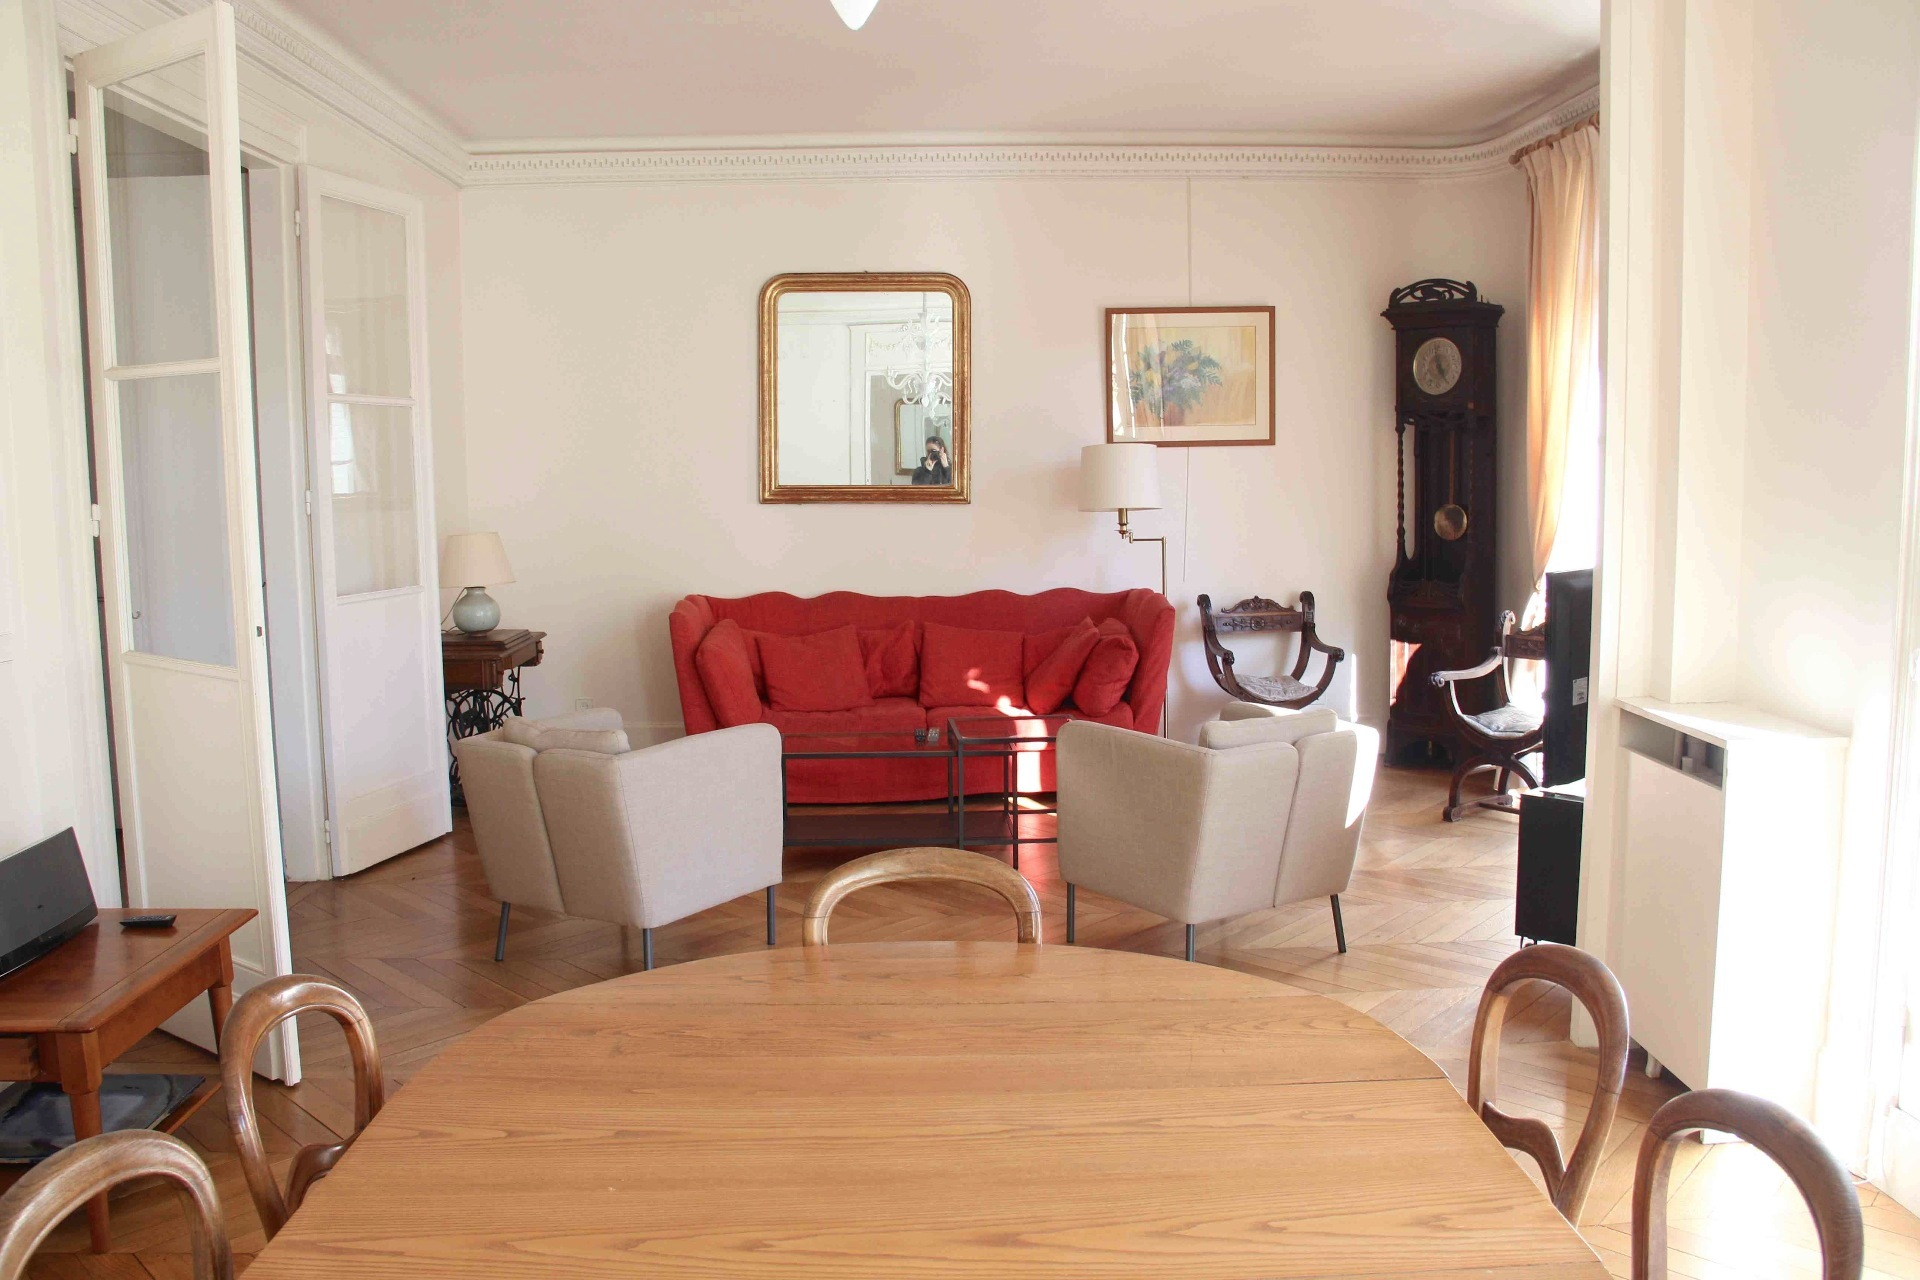 4 Bed Apartment For Rent Furnished In Paris 17th